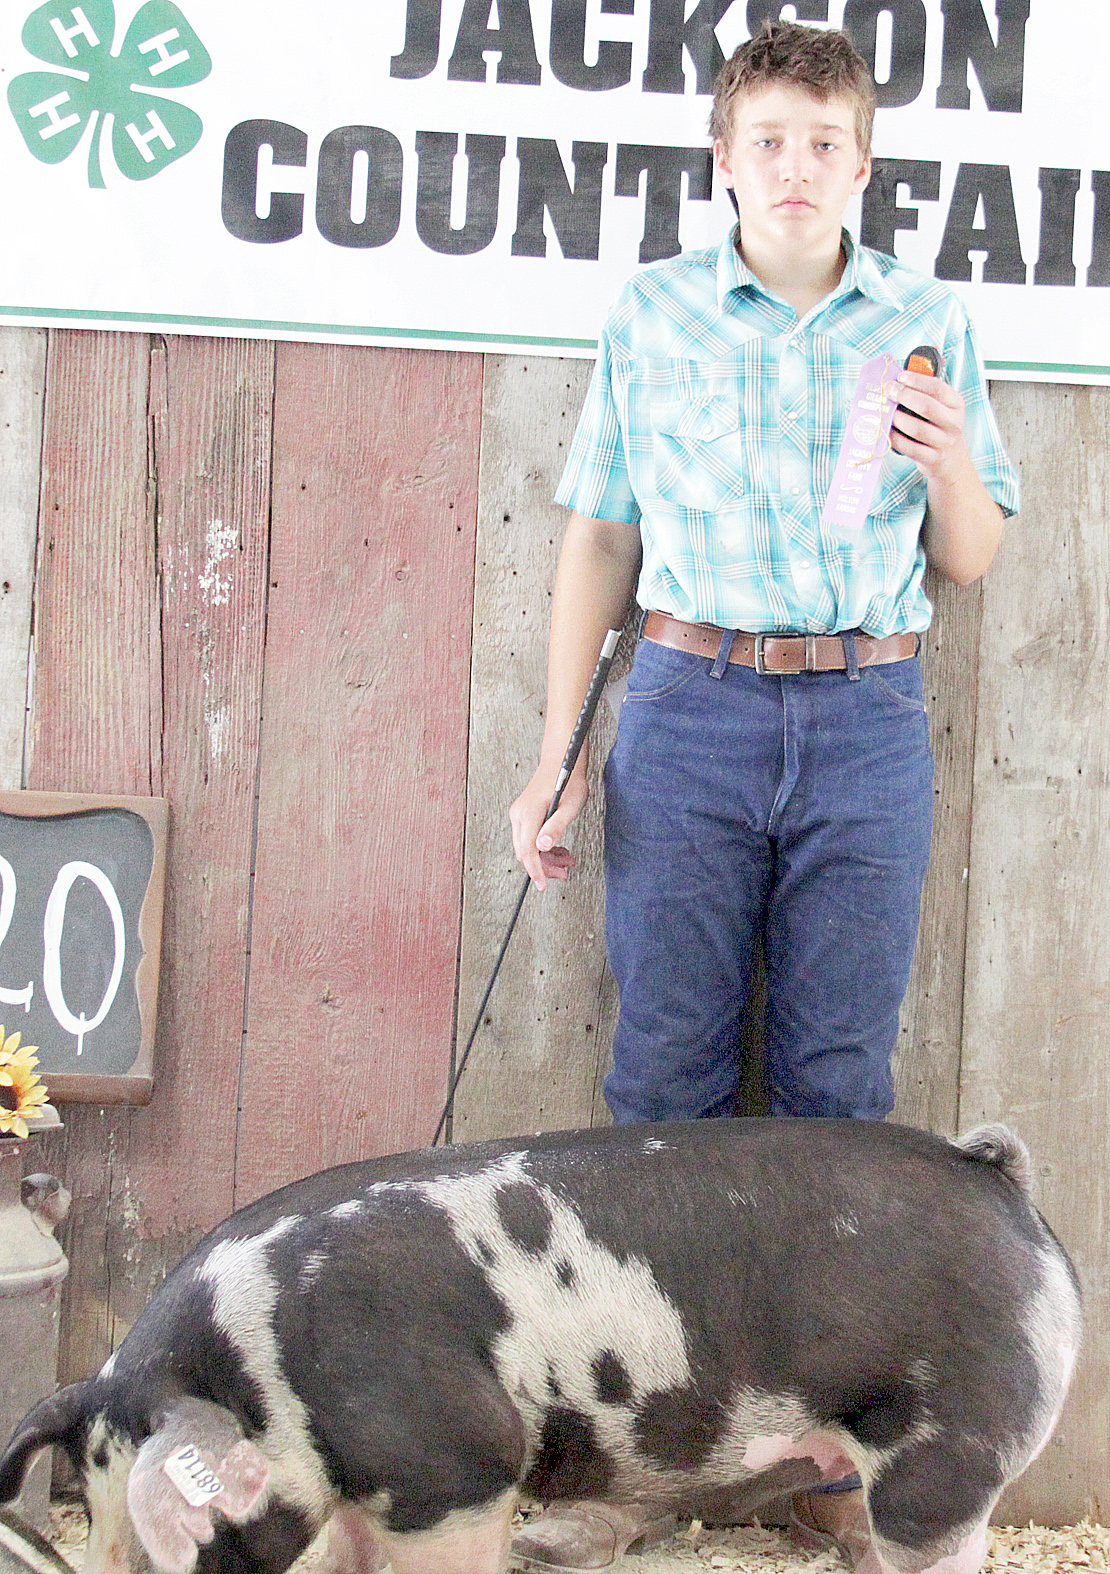 James Beauchamp of the Ontario Busy Bees 4-H Club showed the Reserve Champion Spot market hog at the 2020 Jackson County Fair.